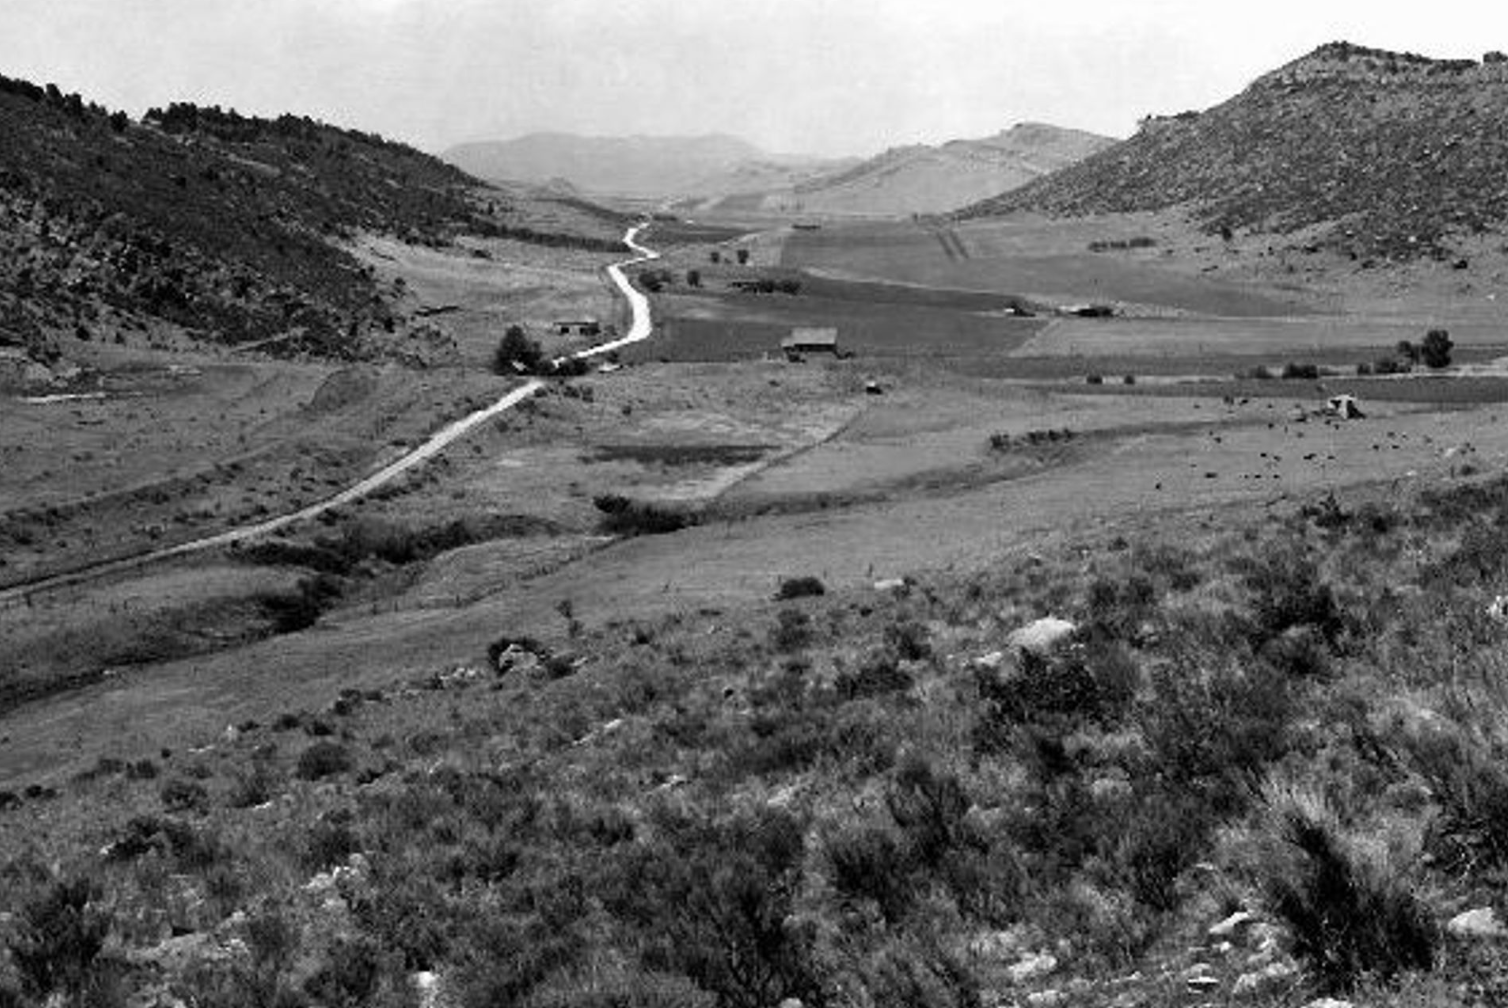 Stout in 1946, one month before construction of the reservior. (Courtesy of the Bureau of Reclamation)